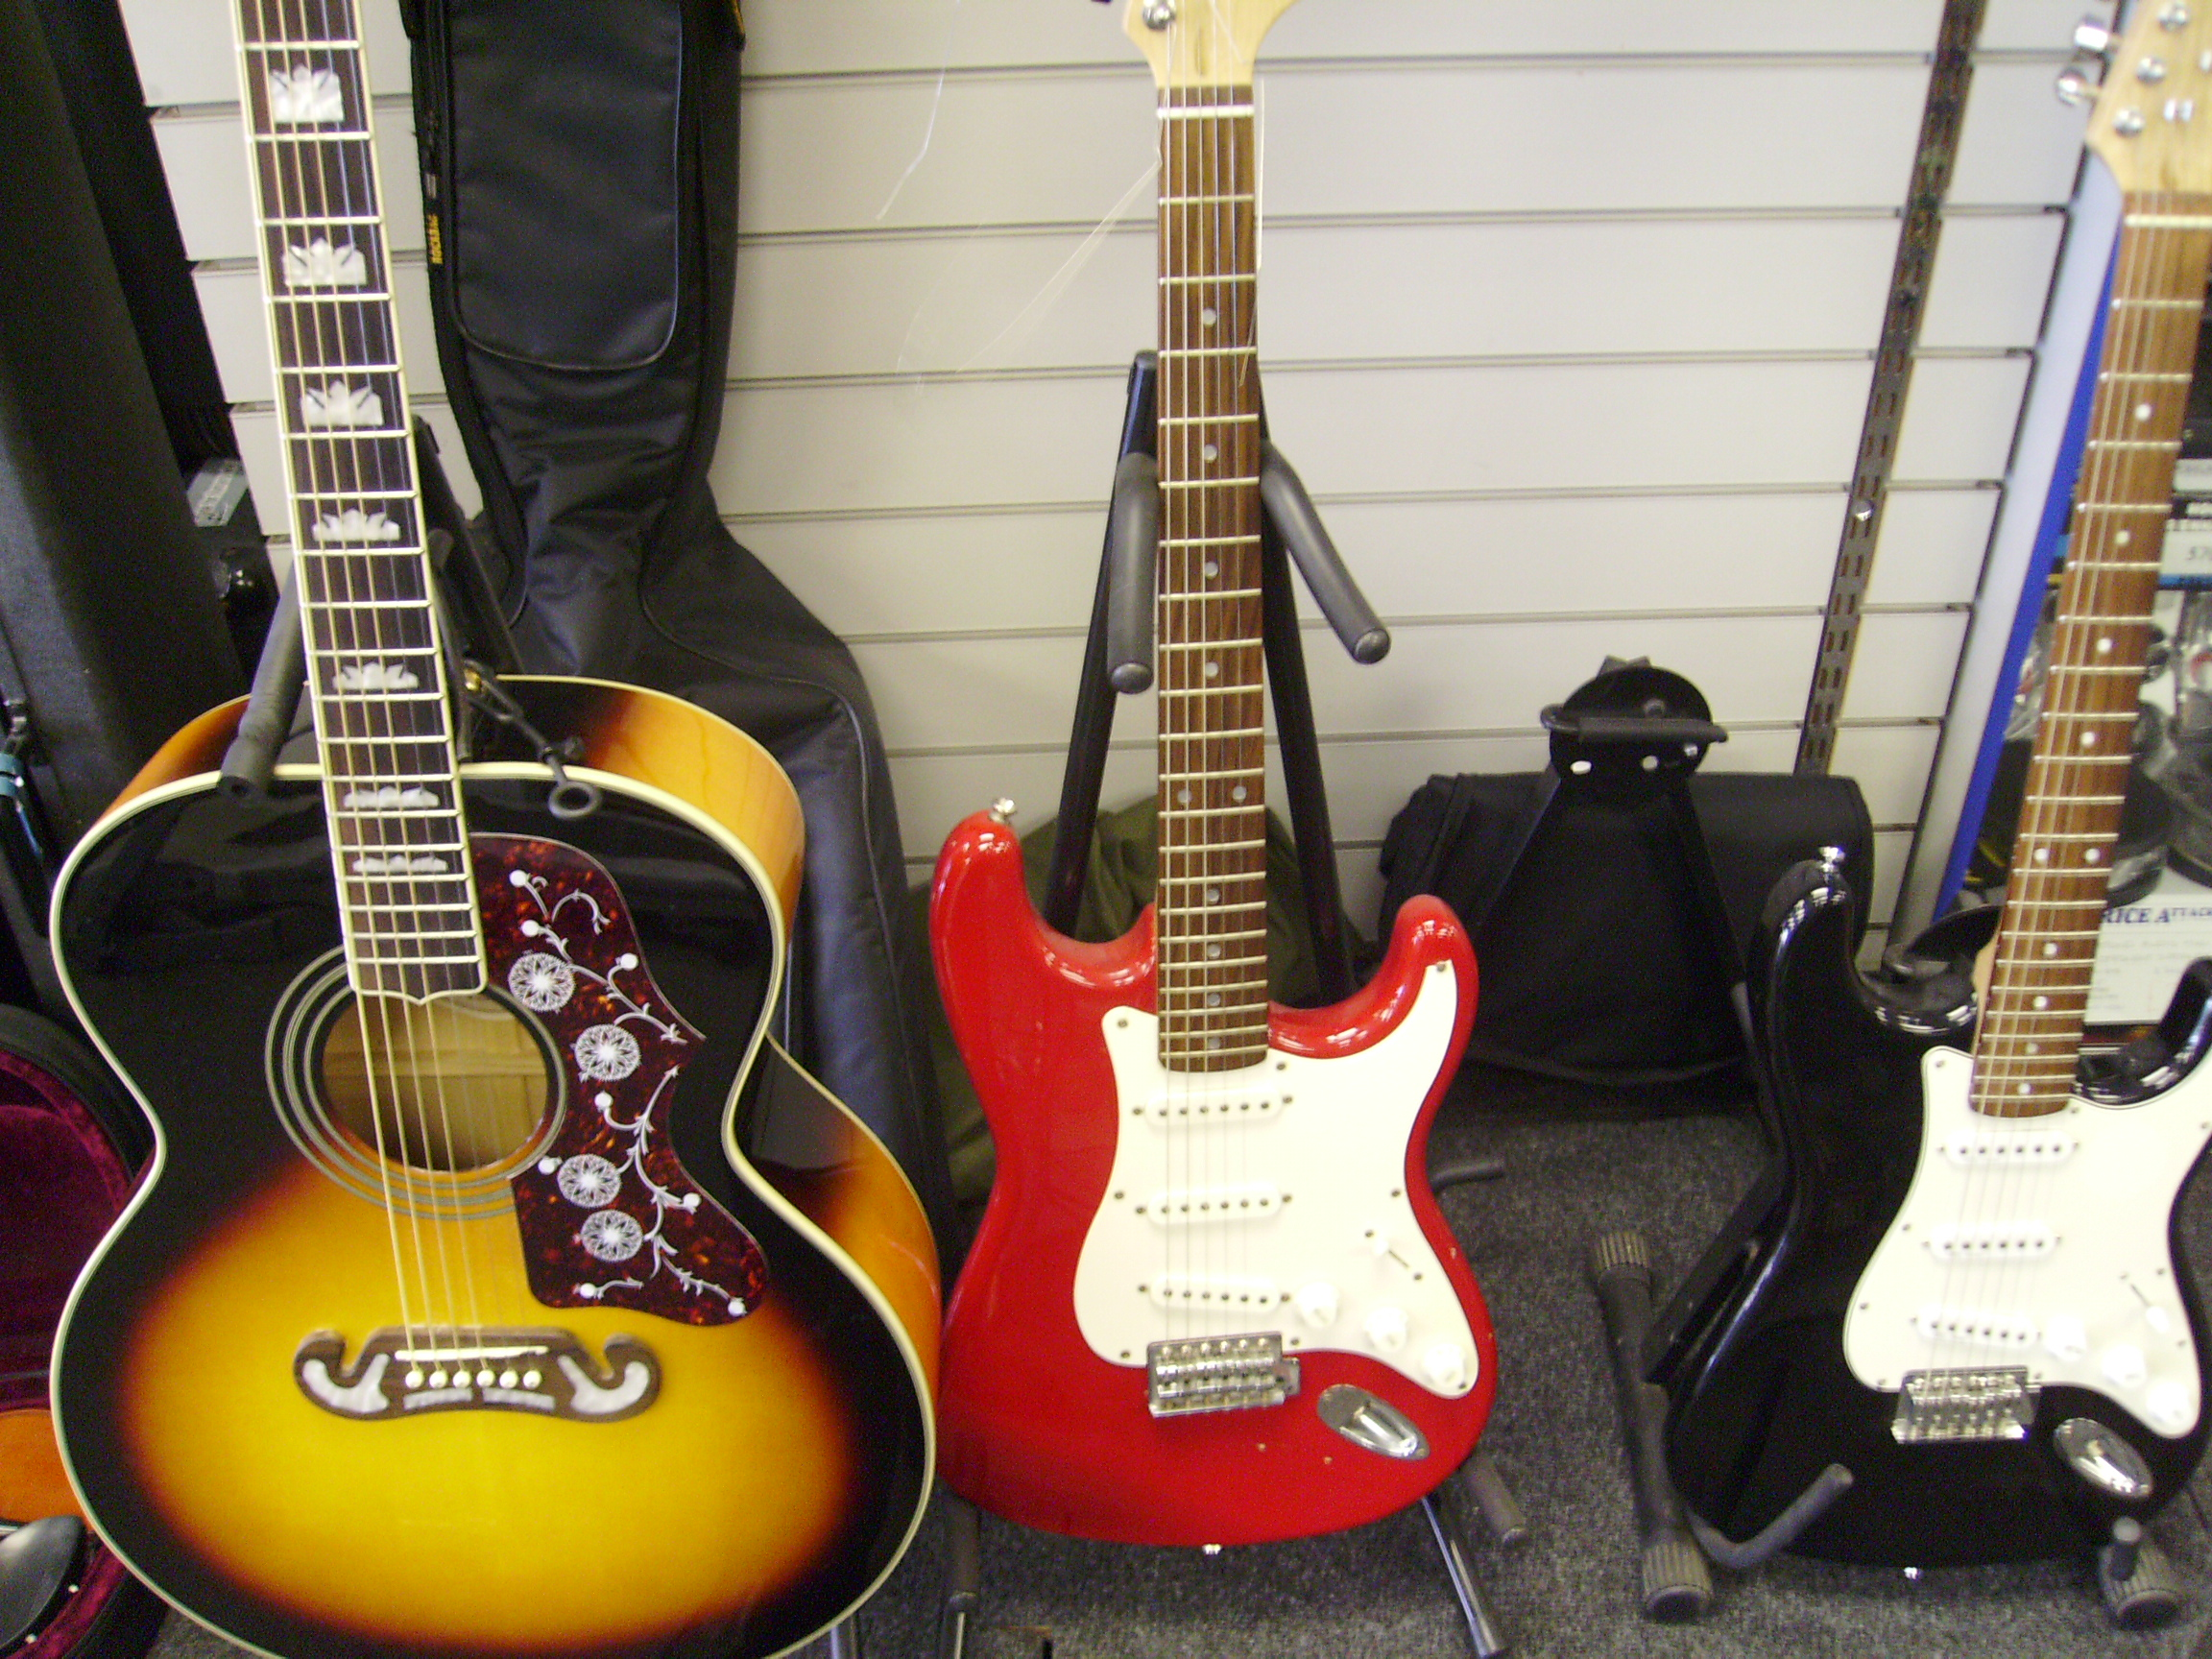 Musical Instruments - guitars, amps, effects.   Other instruments including flutes, saxophones, violins etc